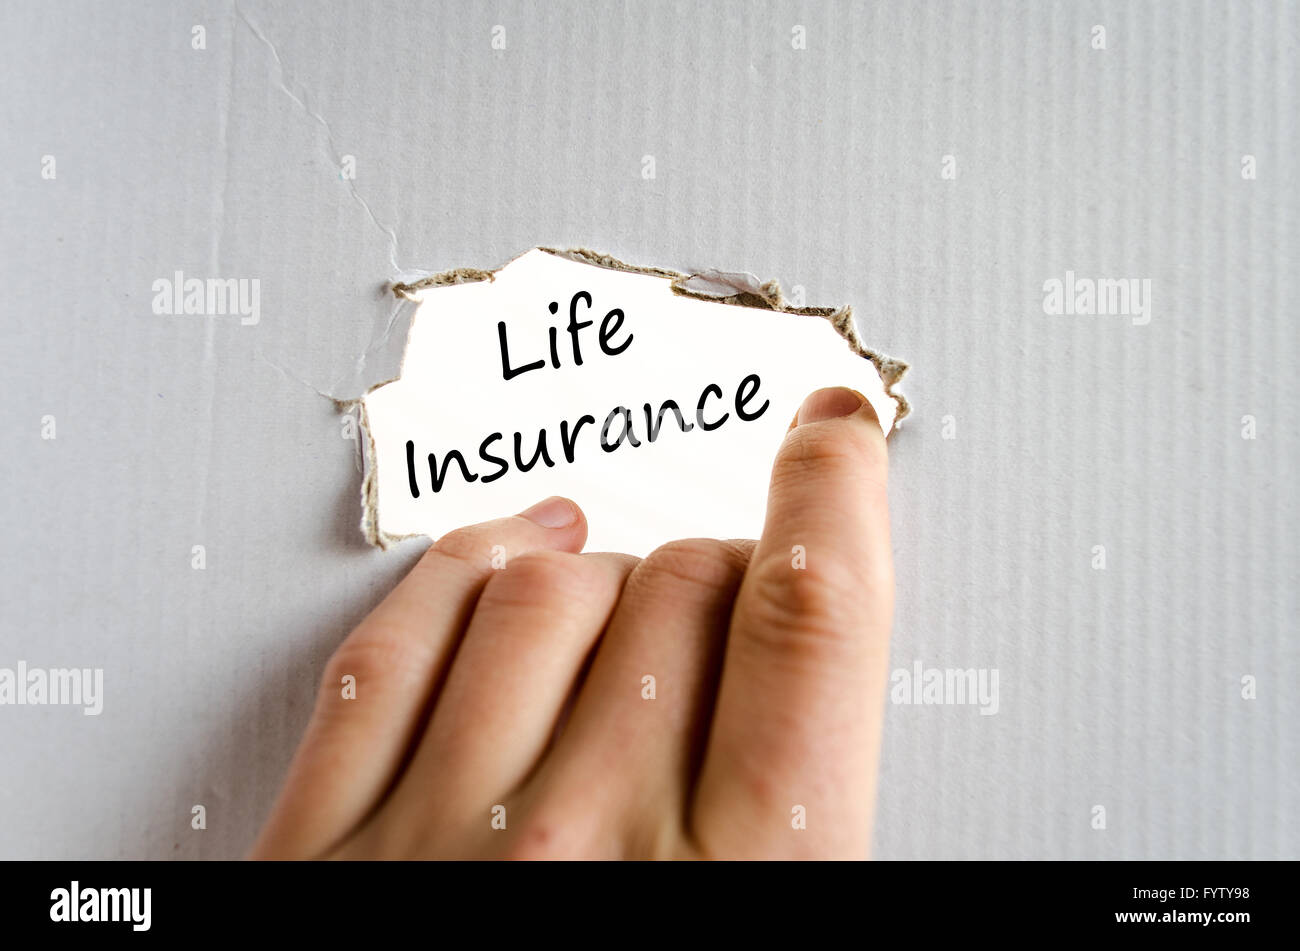 Life insurance text concept - Stock Image